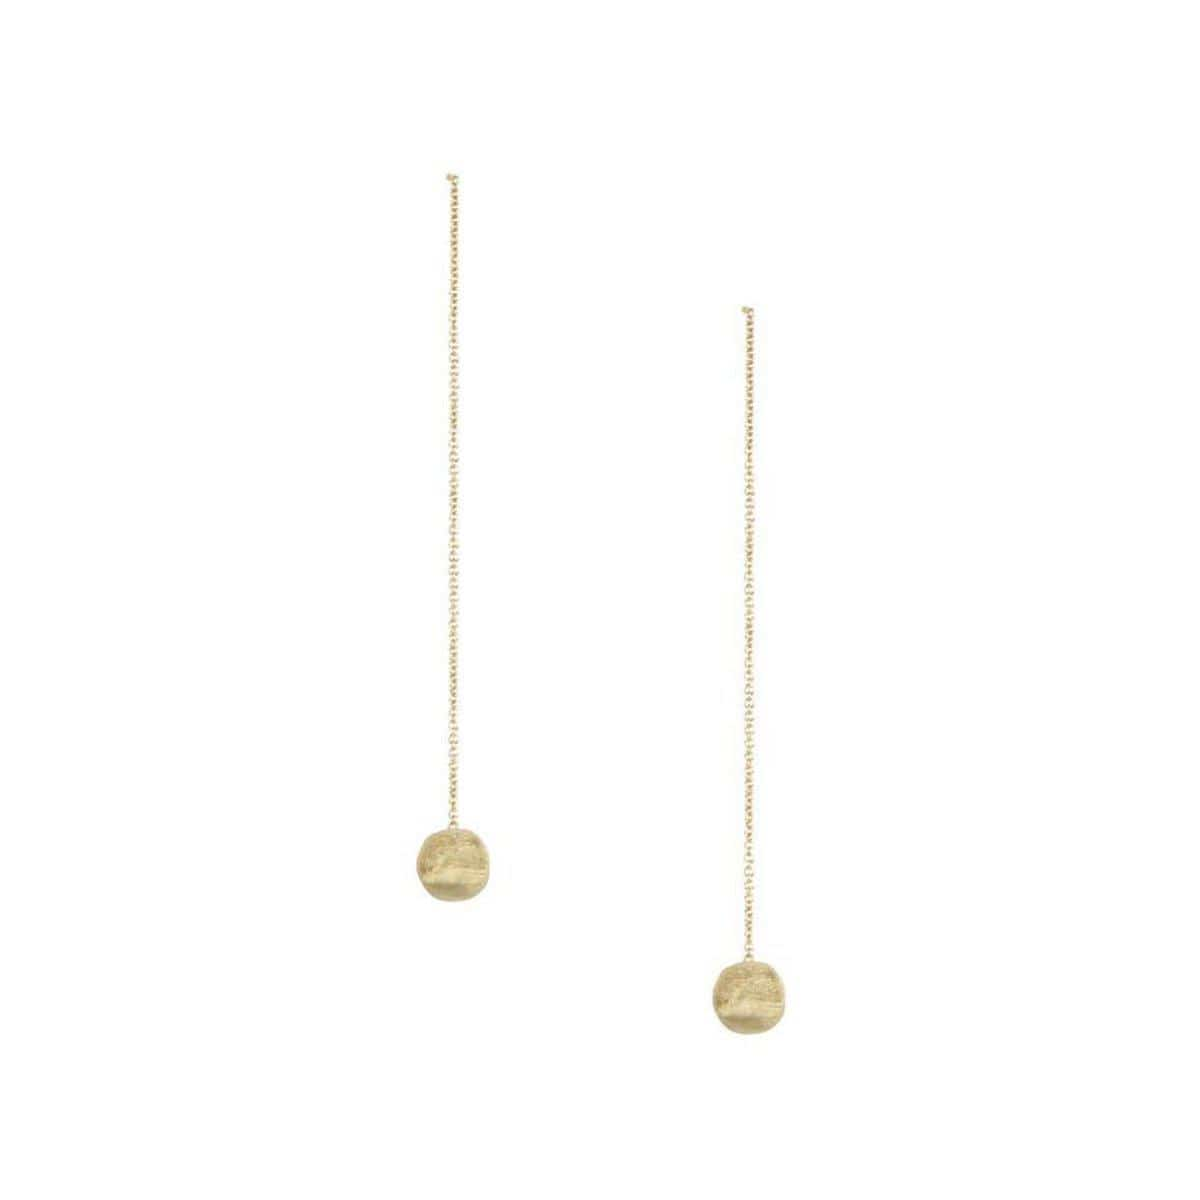 18K Delicati Earrings - OB1361 Y-Marco Bicego-Renee Taylor Gallery